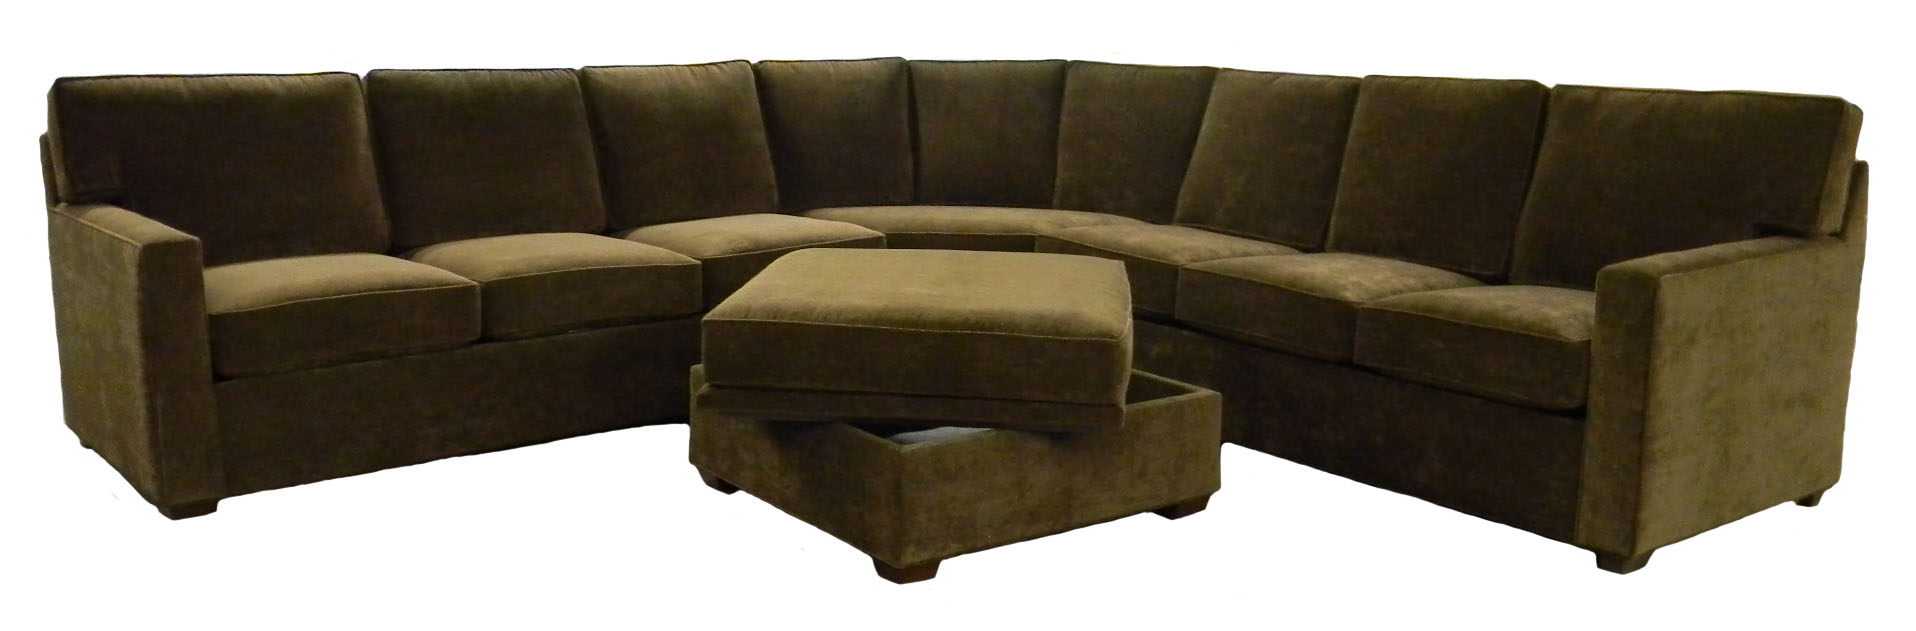 Elegant Peru Sectional Couches Plus Table With Storage For Inspiring Furniture Ideas